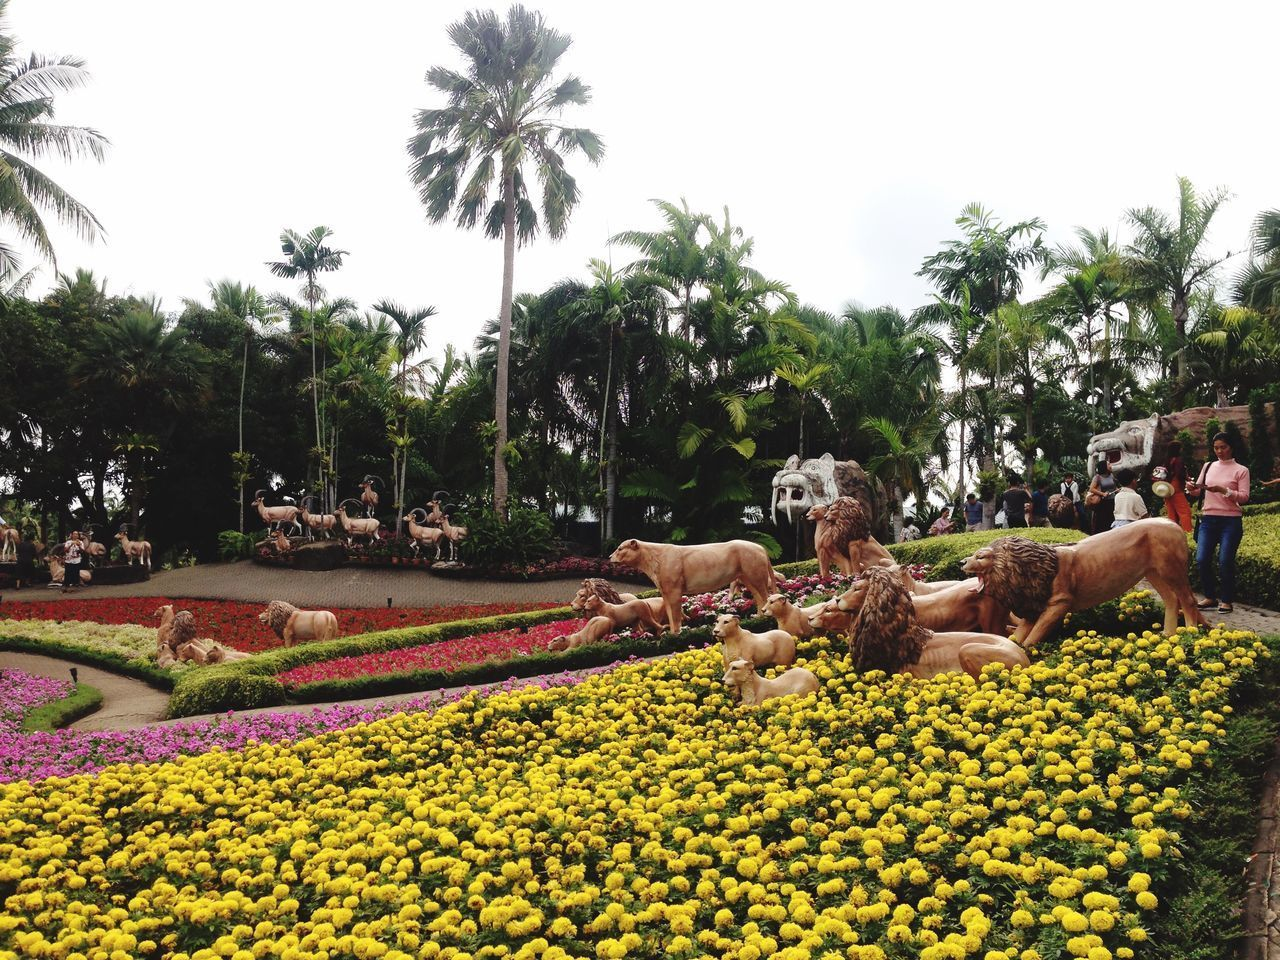 plant, flower, flowering plant, tree, growth, sky, nature, palm tree, tropical climate, yellow, freshness, park, garden, animal themes, mammal, day, beauty in nature, park - man made space, animal, no people, flower head, flowerbed